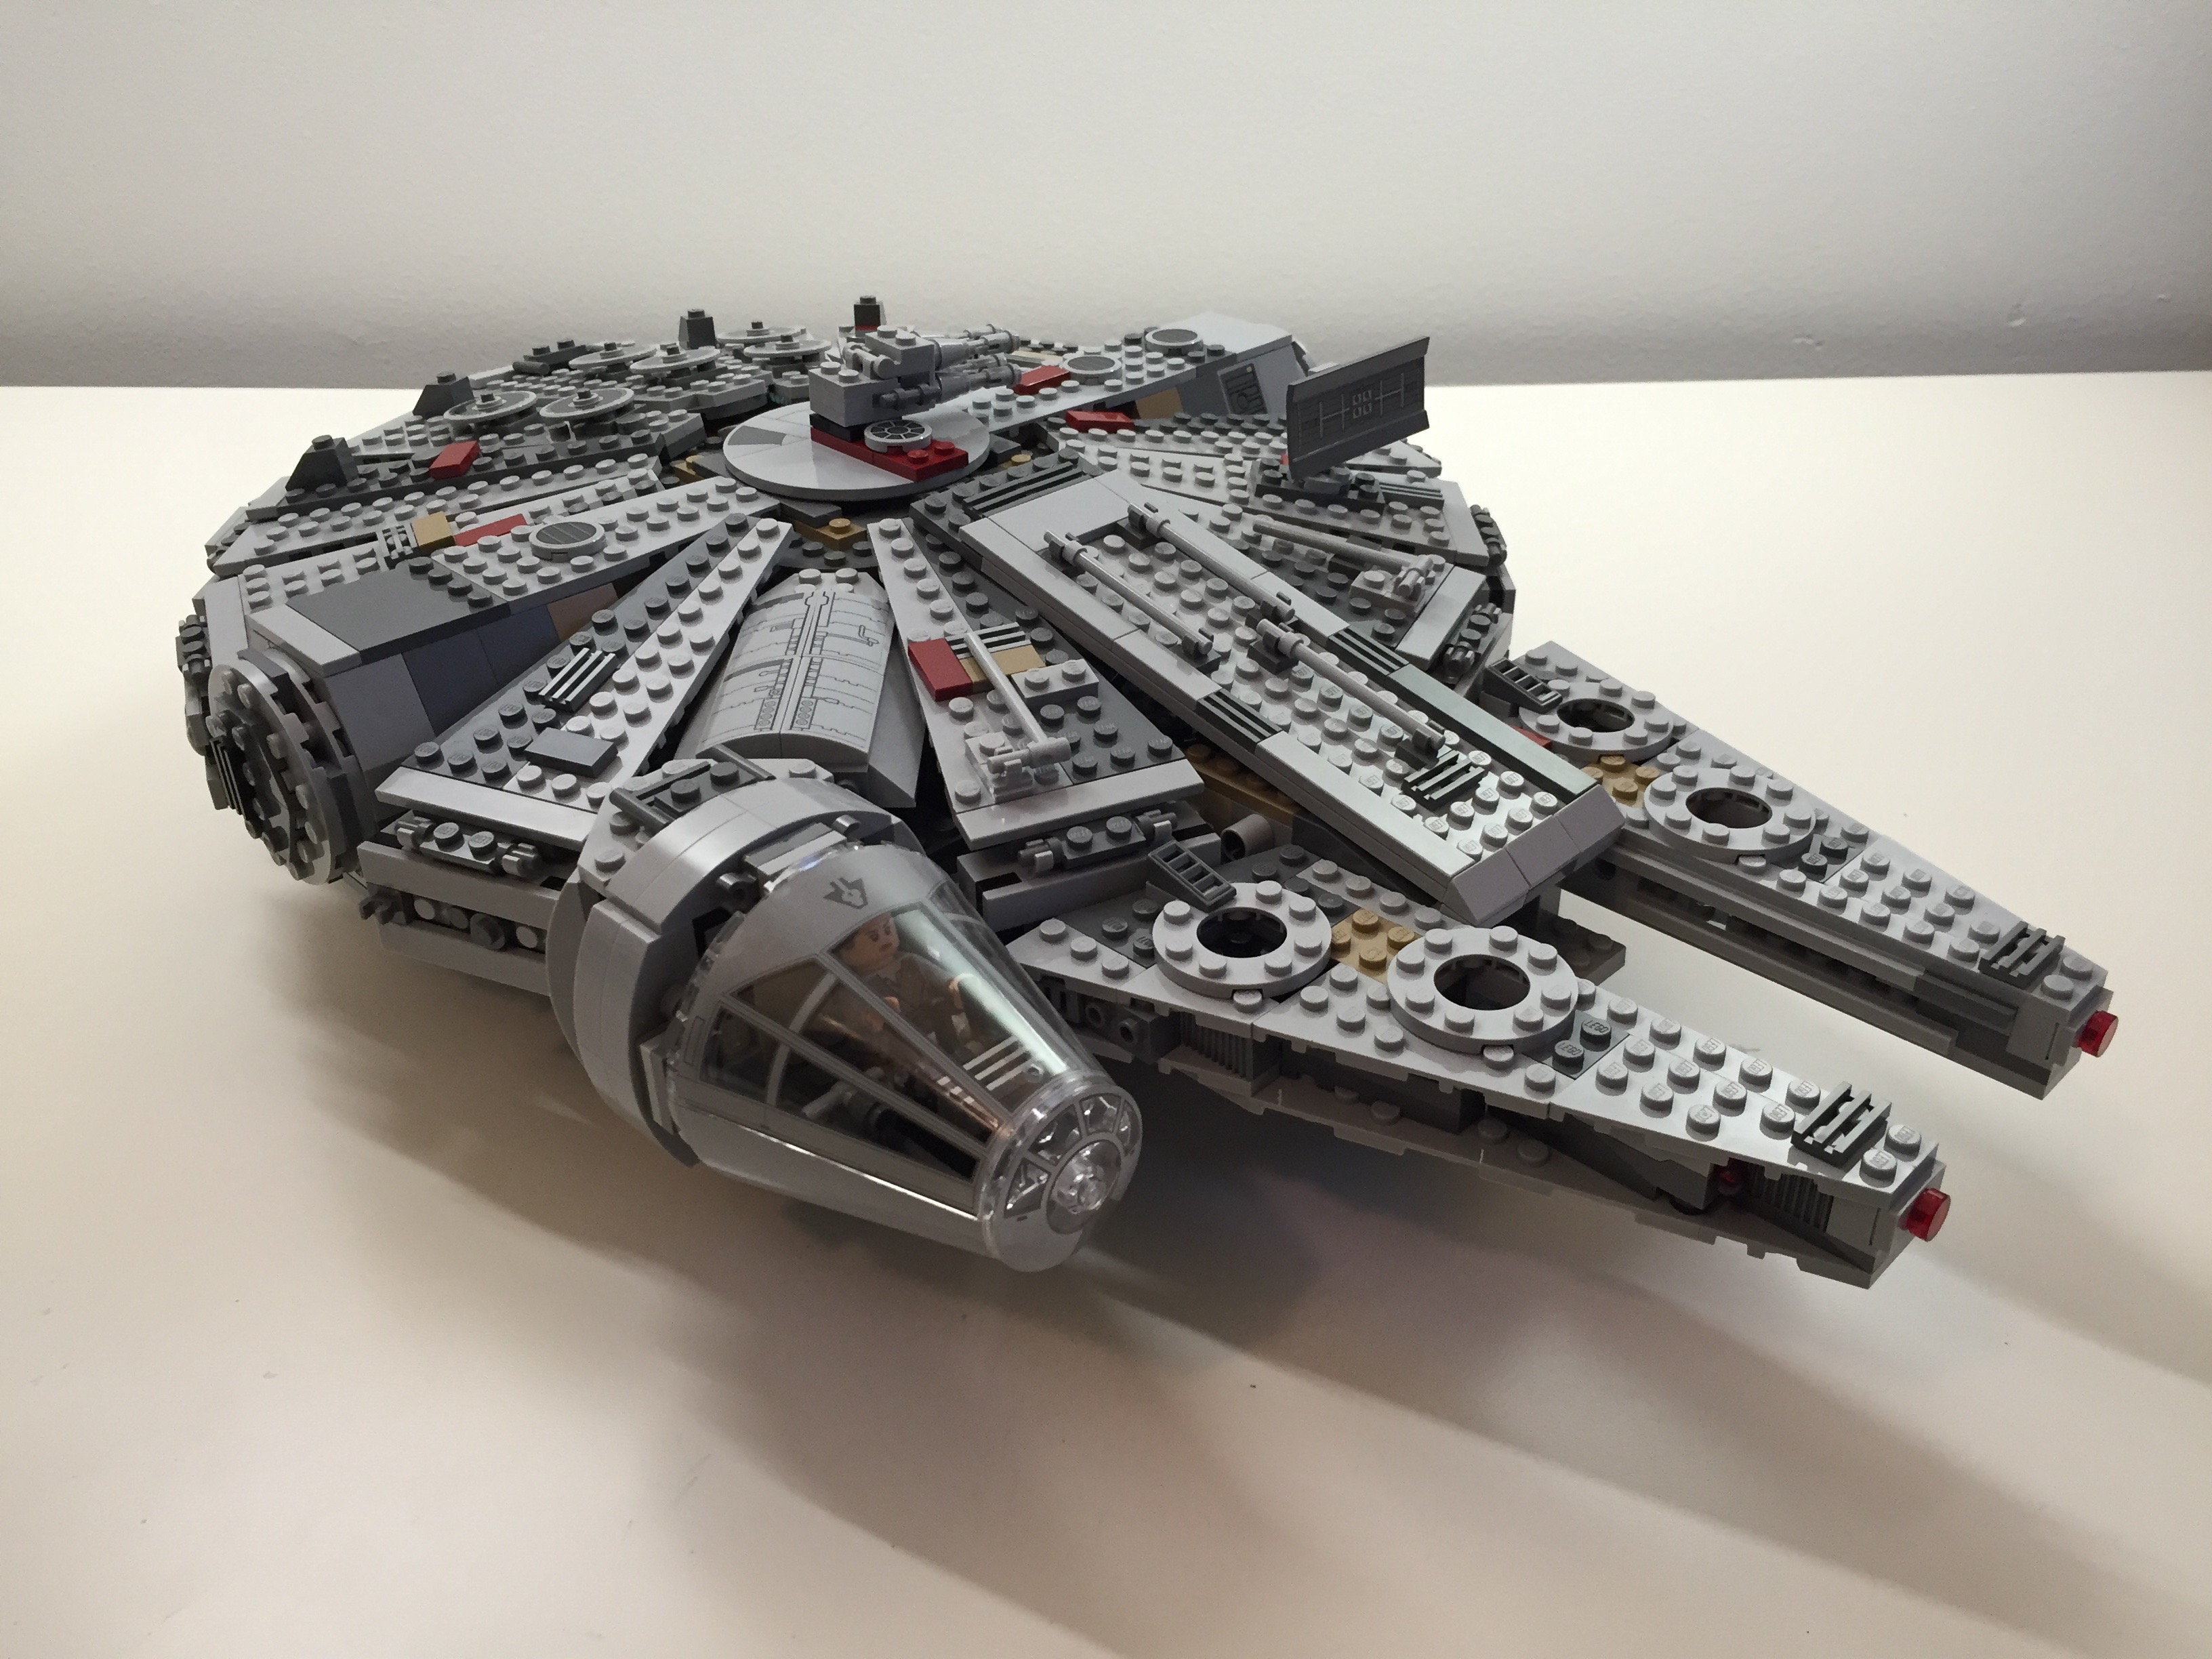 Customized LEGO Star Wars Millennium Falcon 75105 from The Force Awakens – Dynamic Subspace